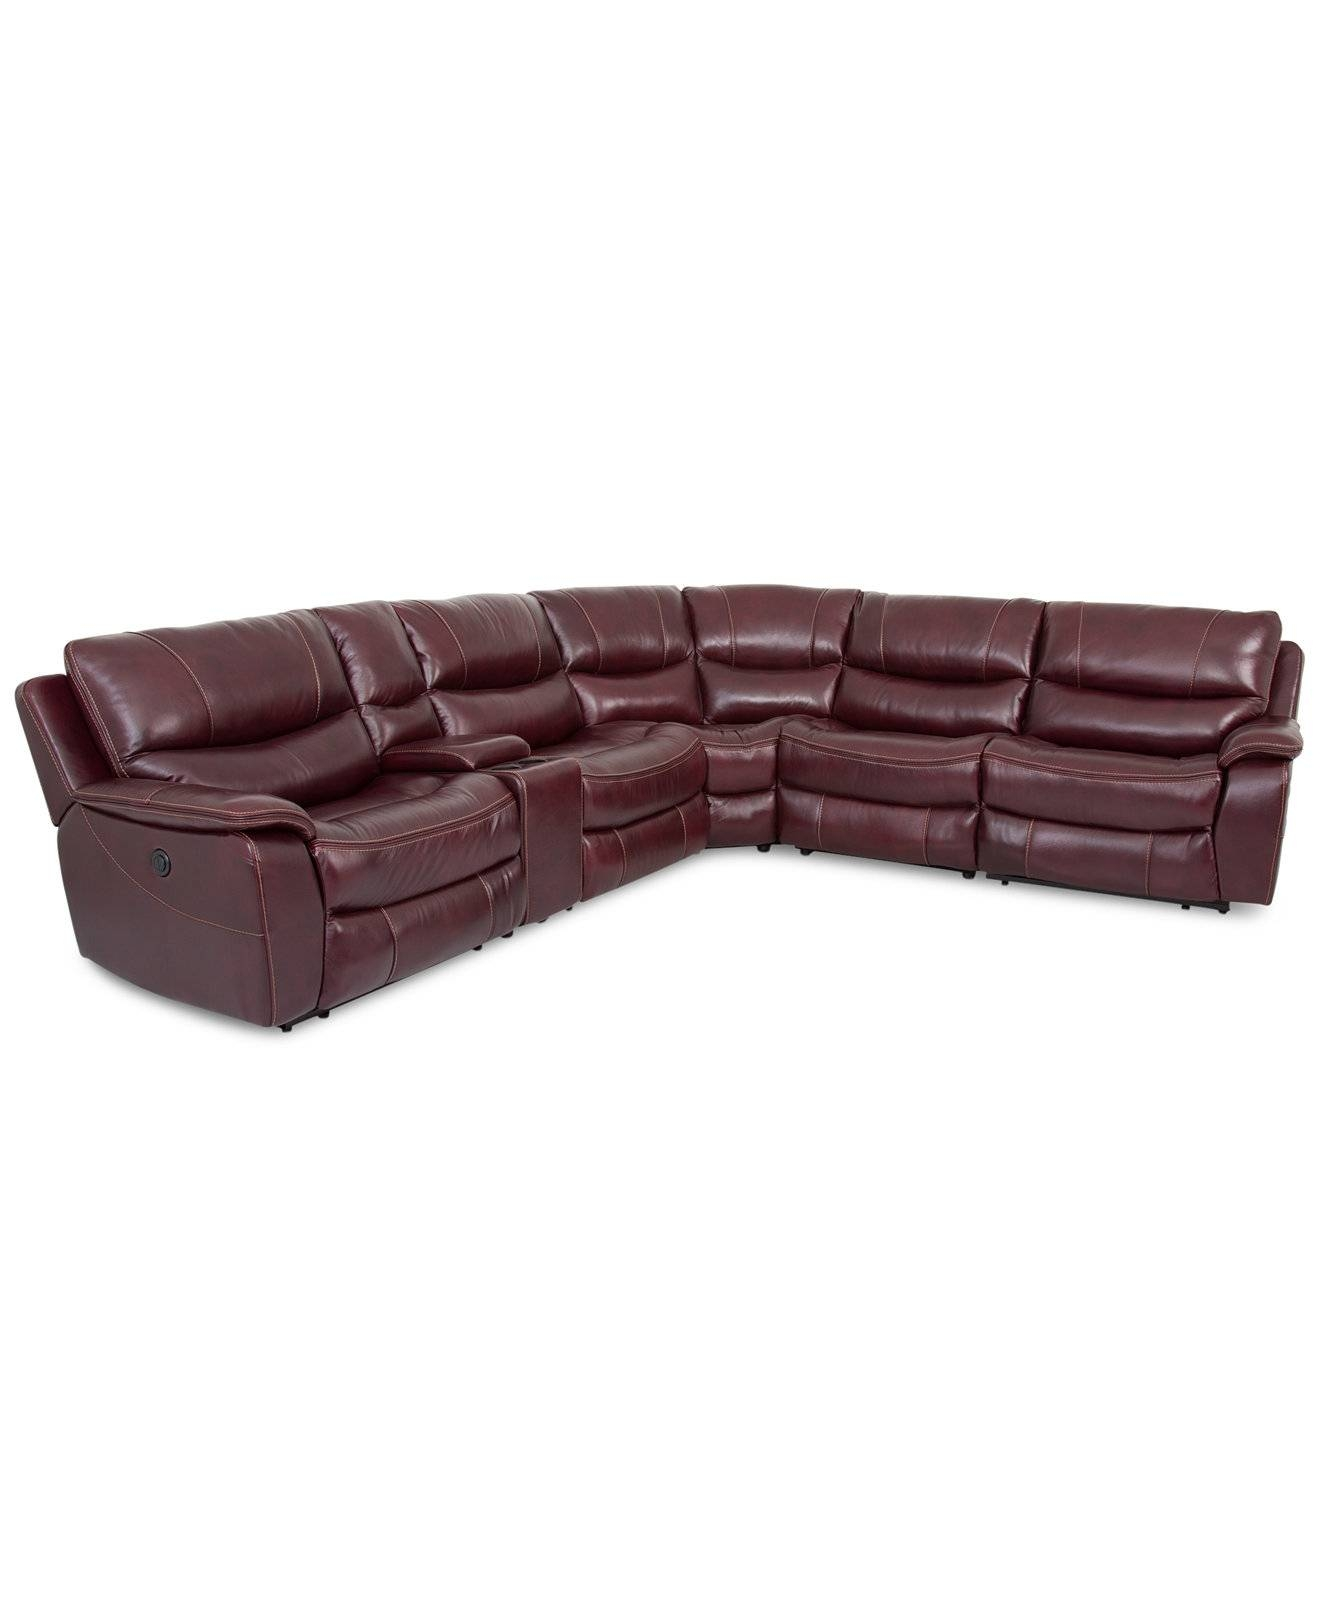 Sofas Center : Impressive Macys Leather Sofa Image Ideas Sofas For inside Leather Motion Sectional Sofa (Image 21 of 25)